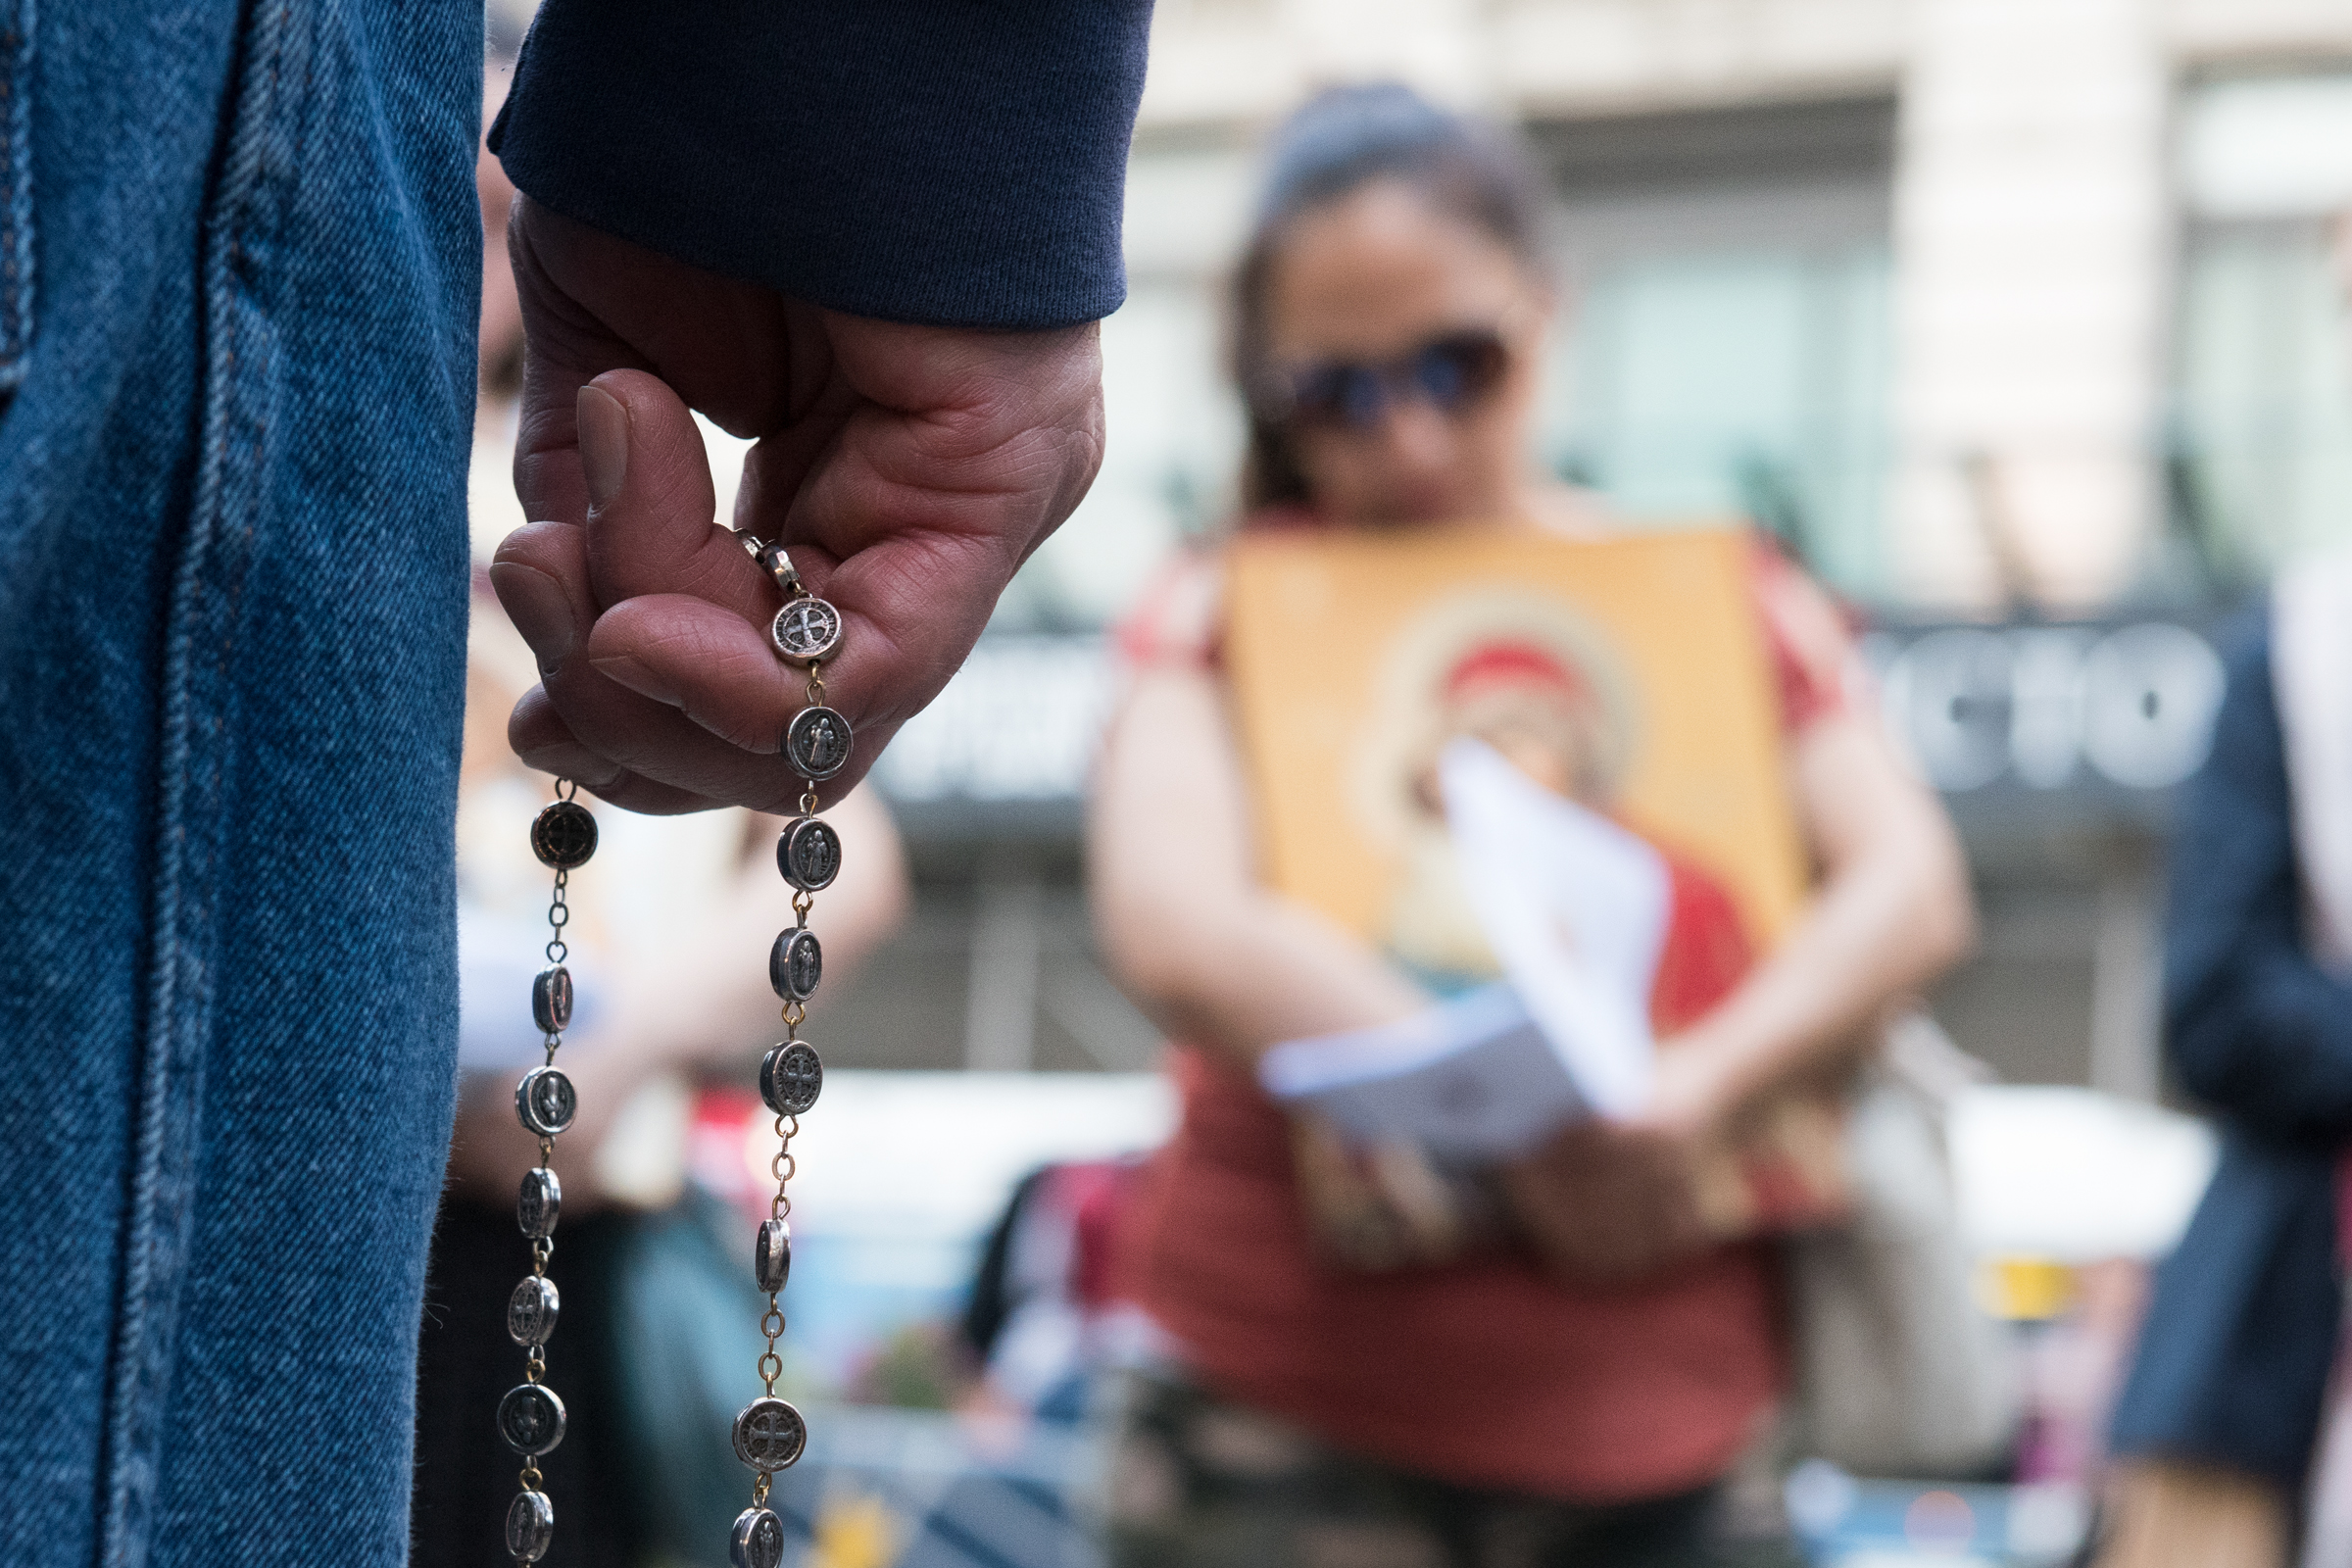 CHRISTIAN PERSECUTION,NEW YORK,TIMES SQUARE